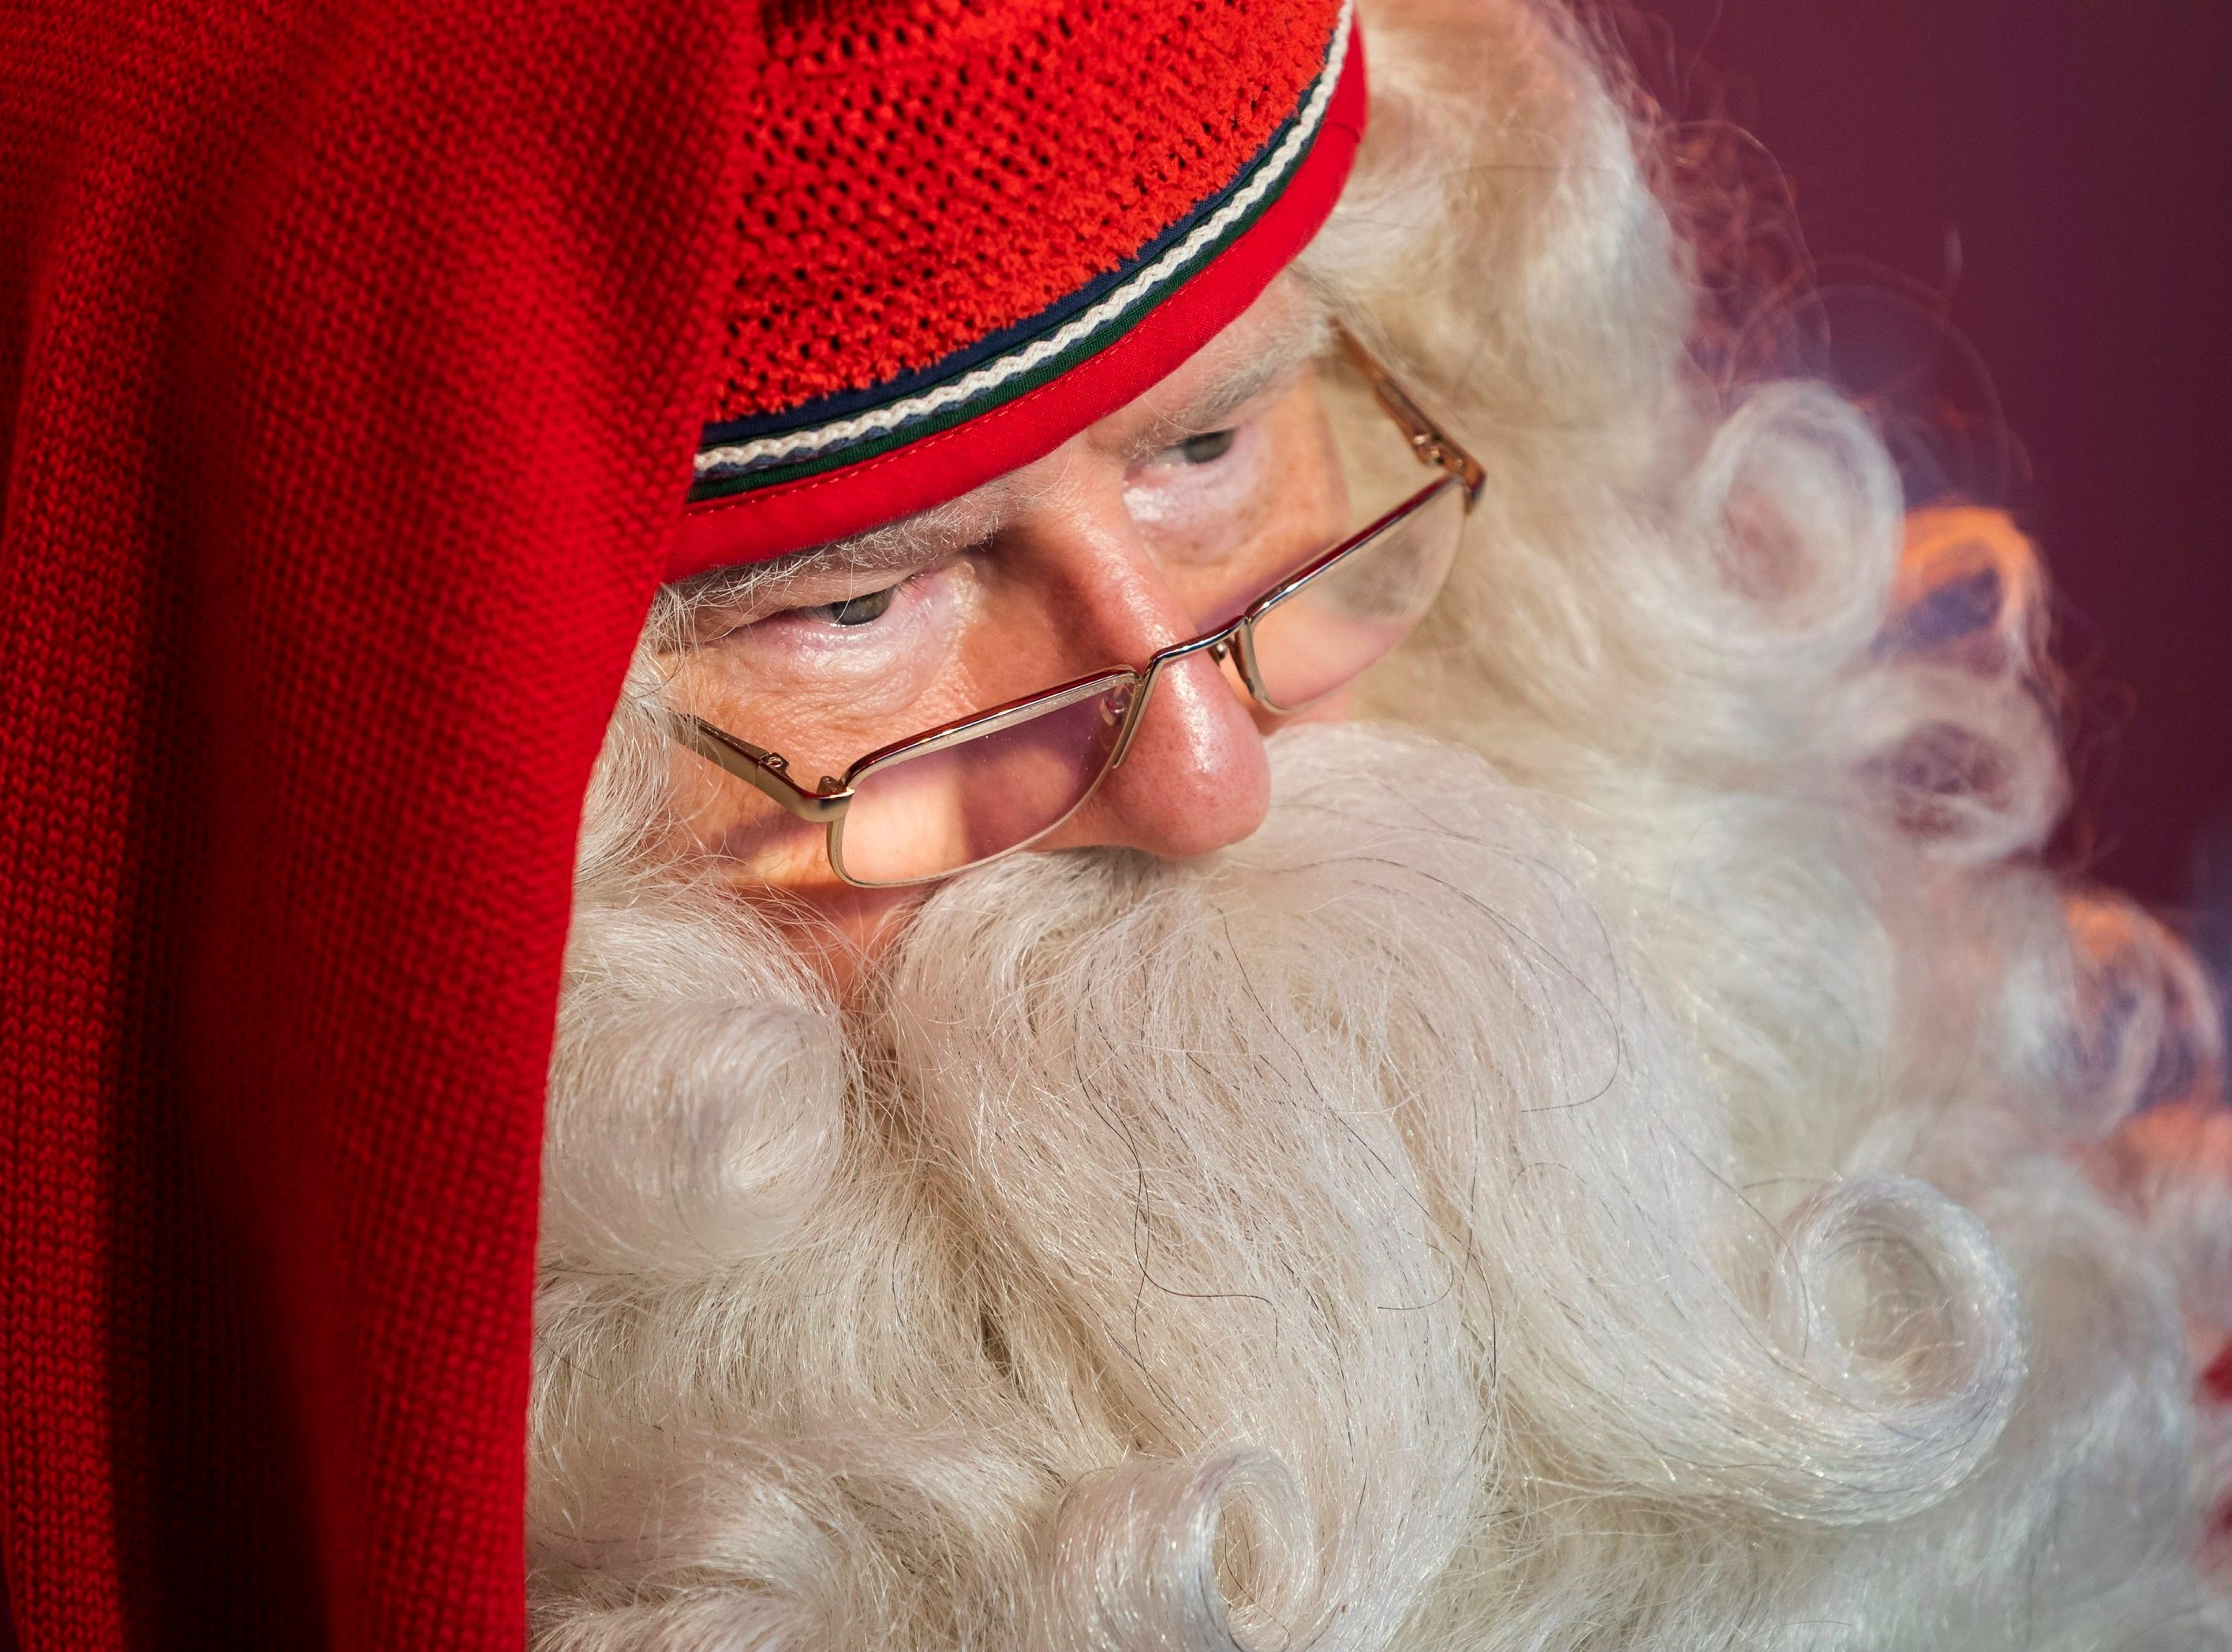 Joulupukki, the Santa Claus from Lappland of Finland is seen upon his arrival at the Santa Claus factory set up in the Millenaris Park, in Budapest, Hungary on Dec. 6, 2018. The Santa Claus factory is a charity campaign created to collect donations from the public.